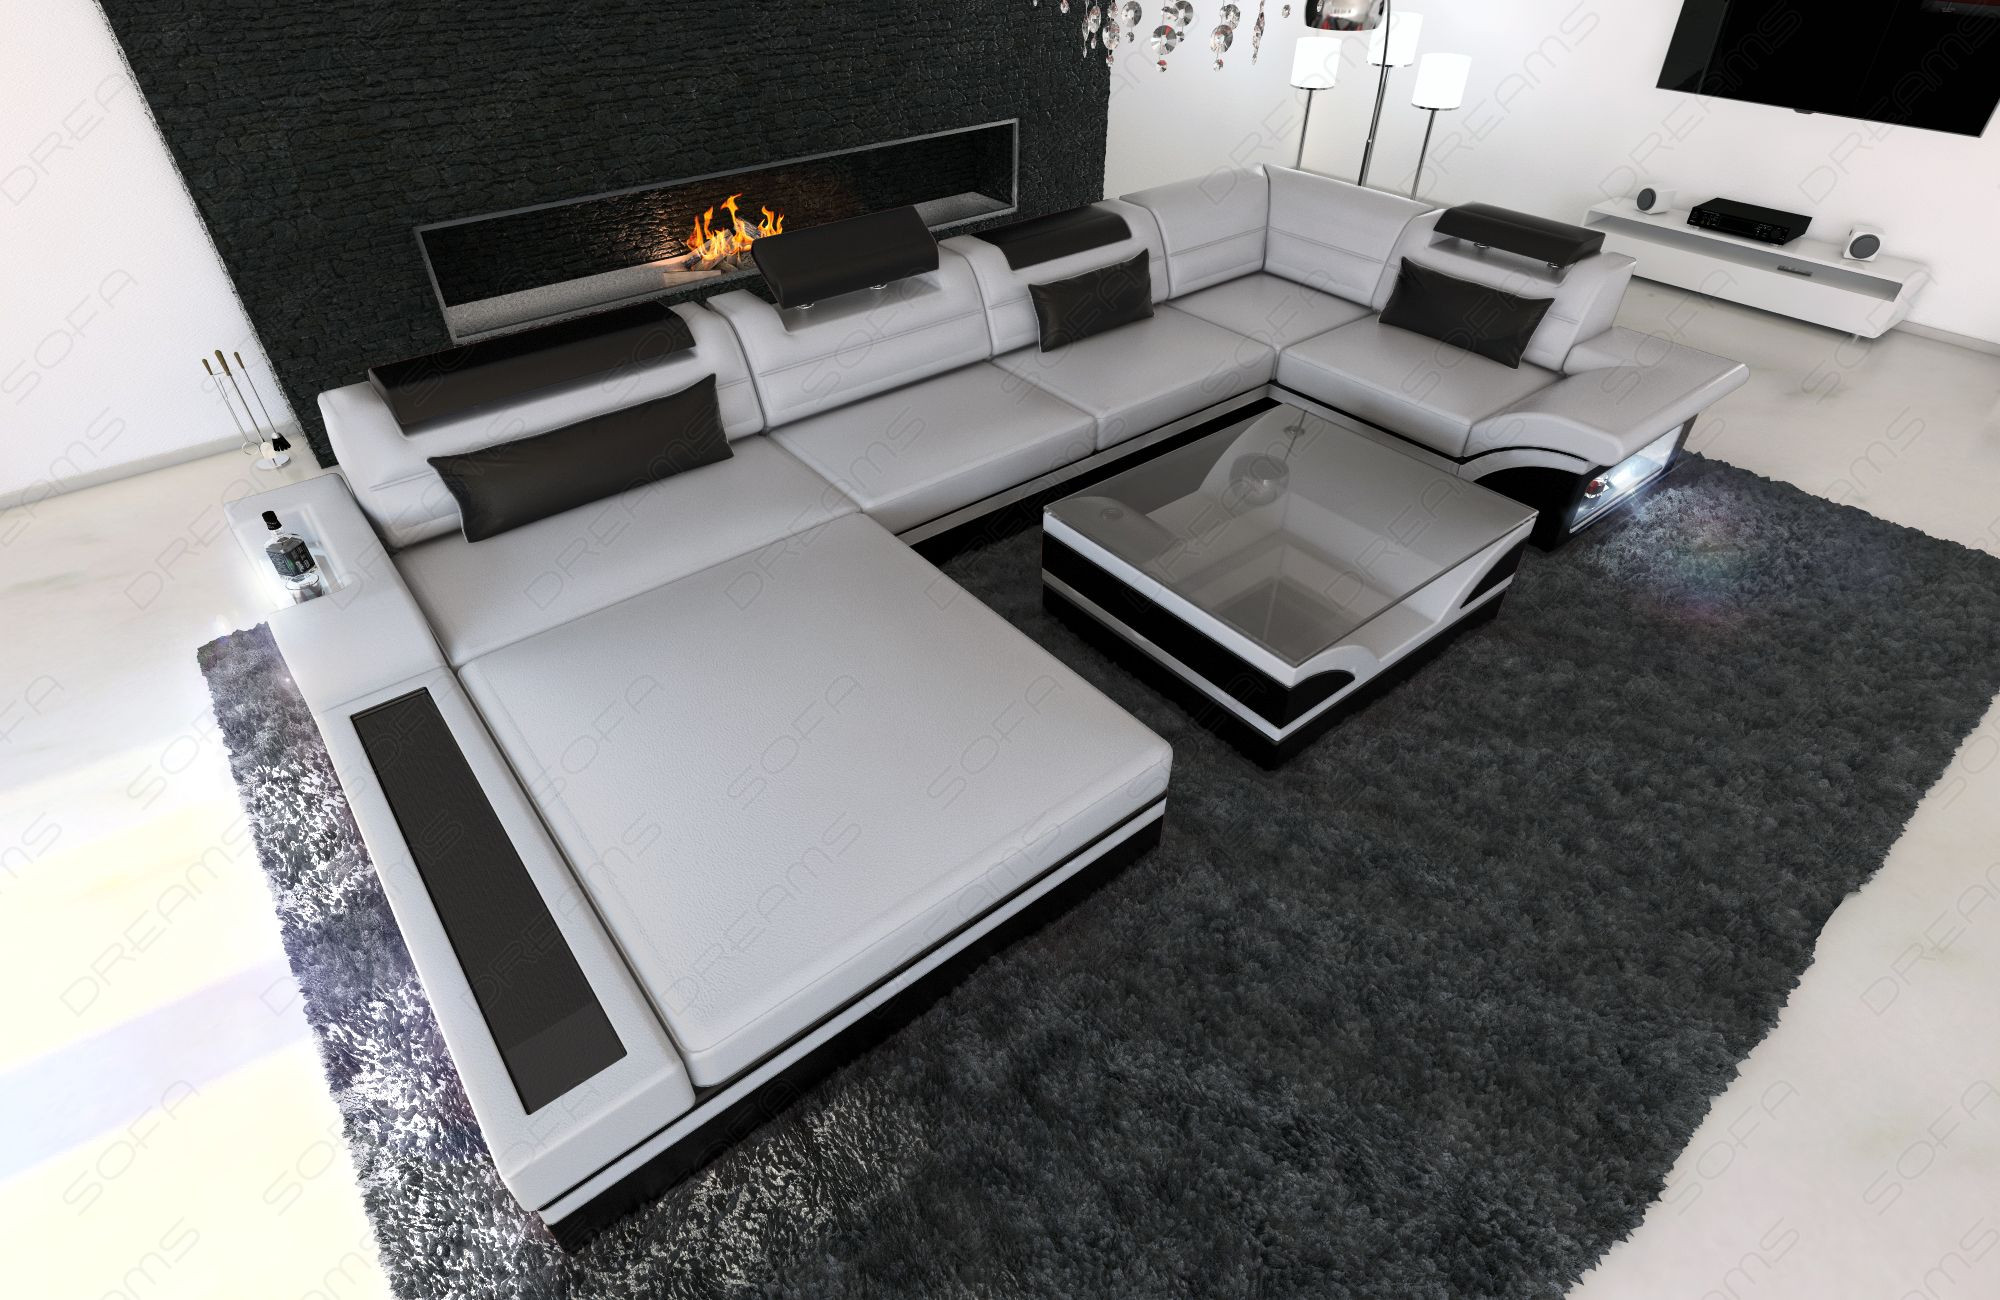 Luxury Sofa Orlando with LED grey-black